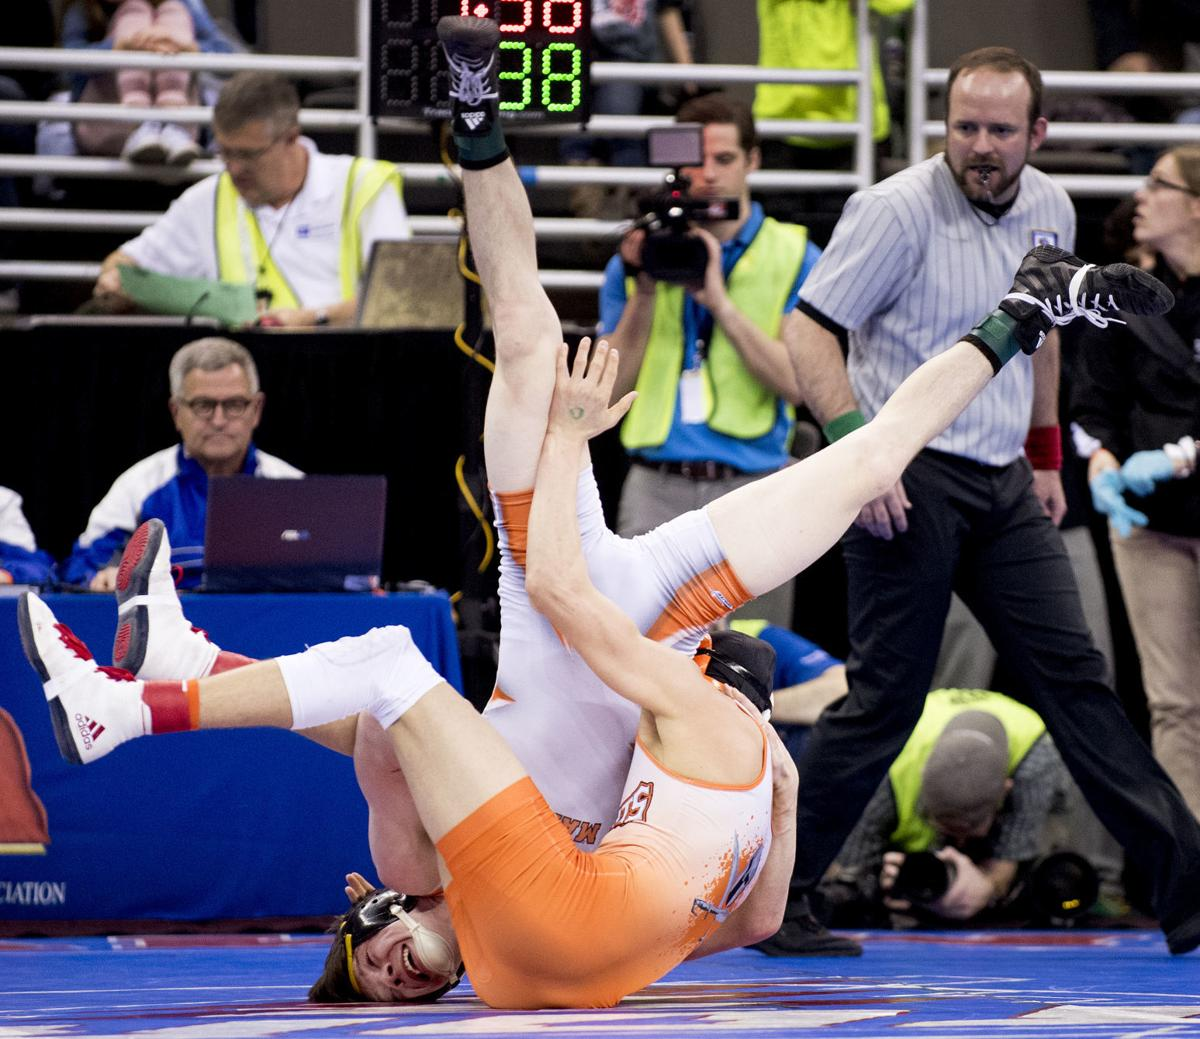 State Wrestling Four Time Challengers Enter Finals With Nothing To Lose High School Wrestling